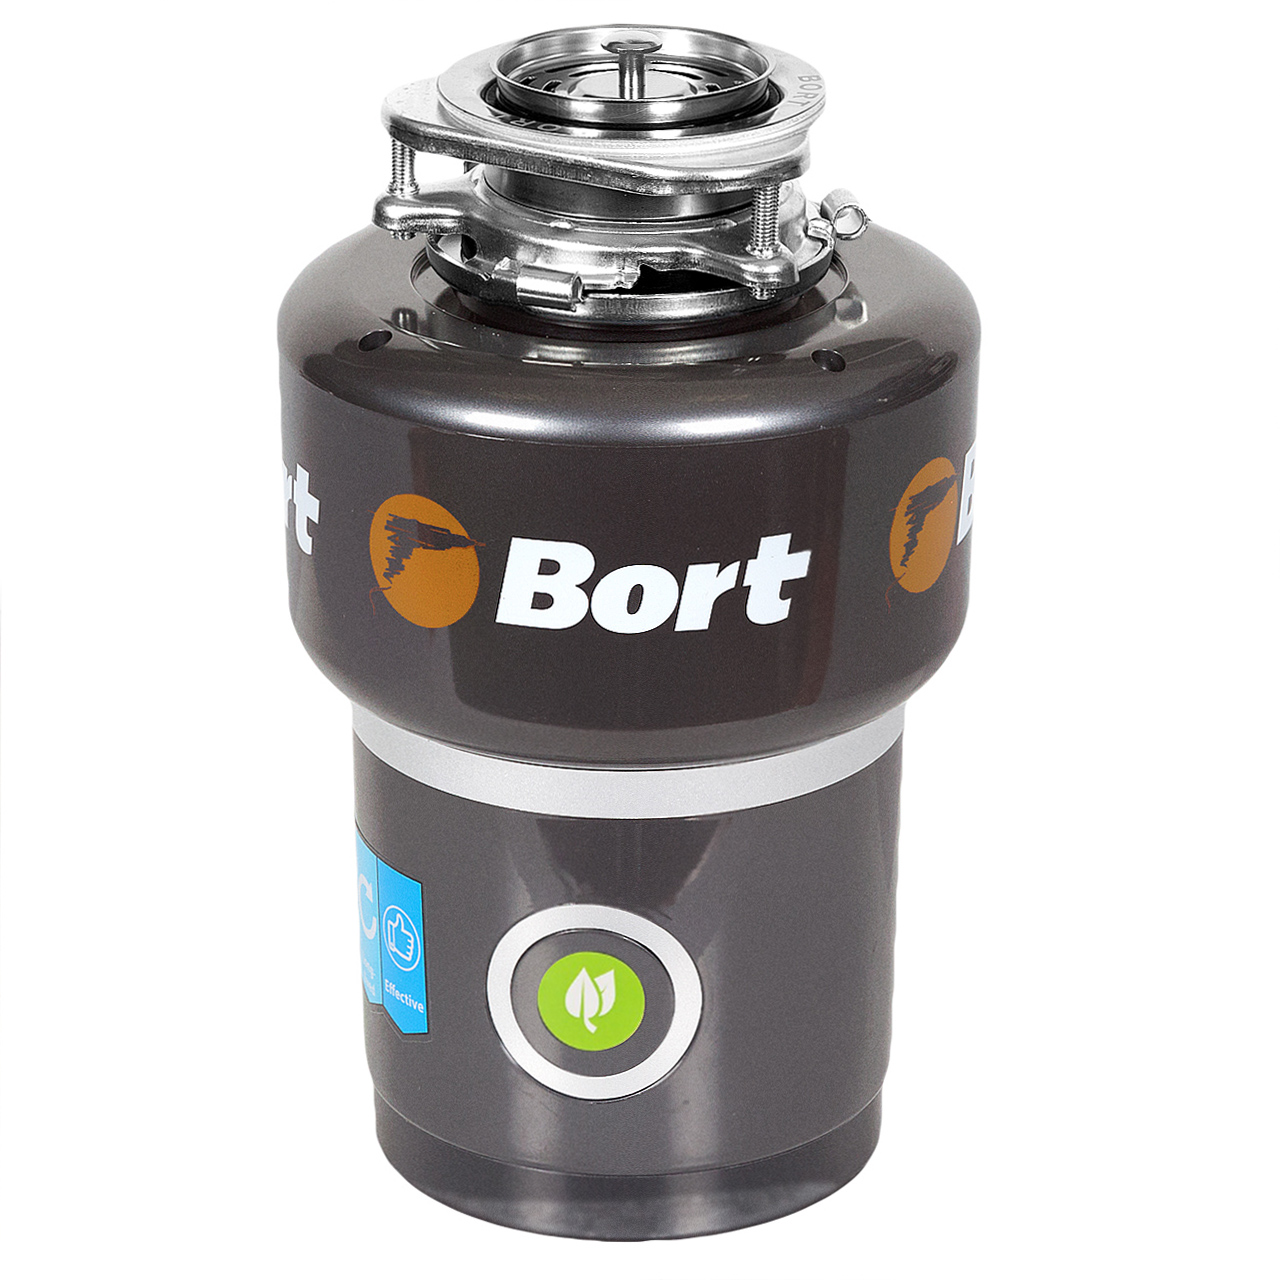 Chopper food waste disposer Bort TITAN 5000 (Control) 3 stage grinding, power 560 W, remote control